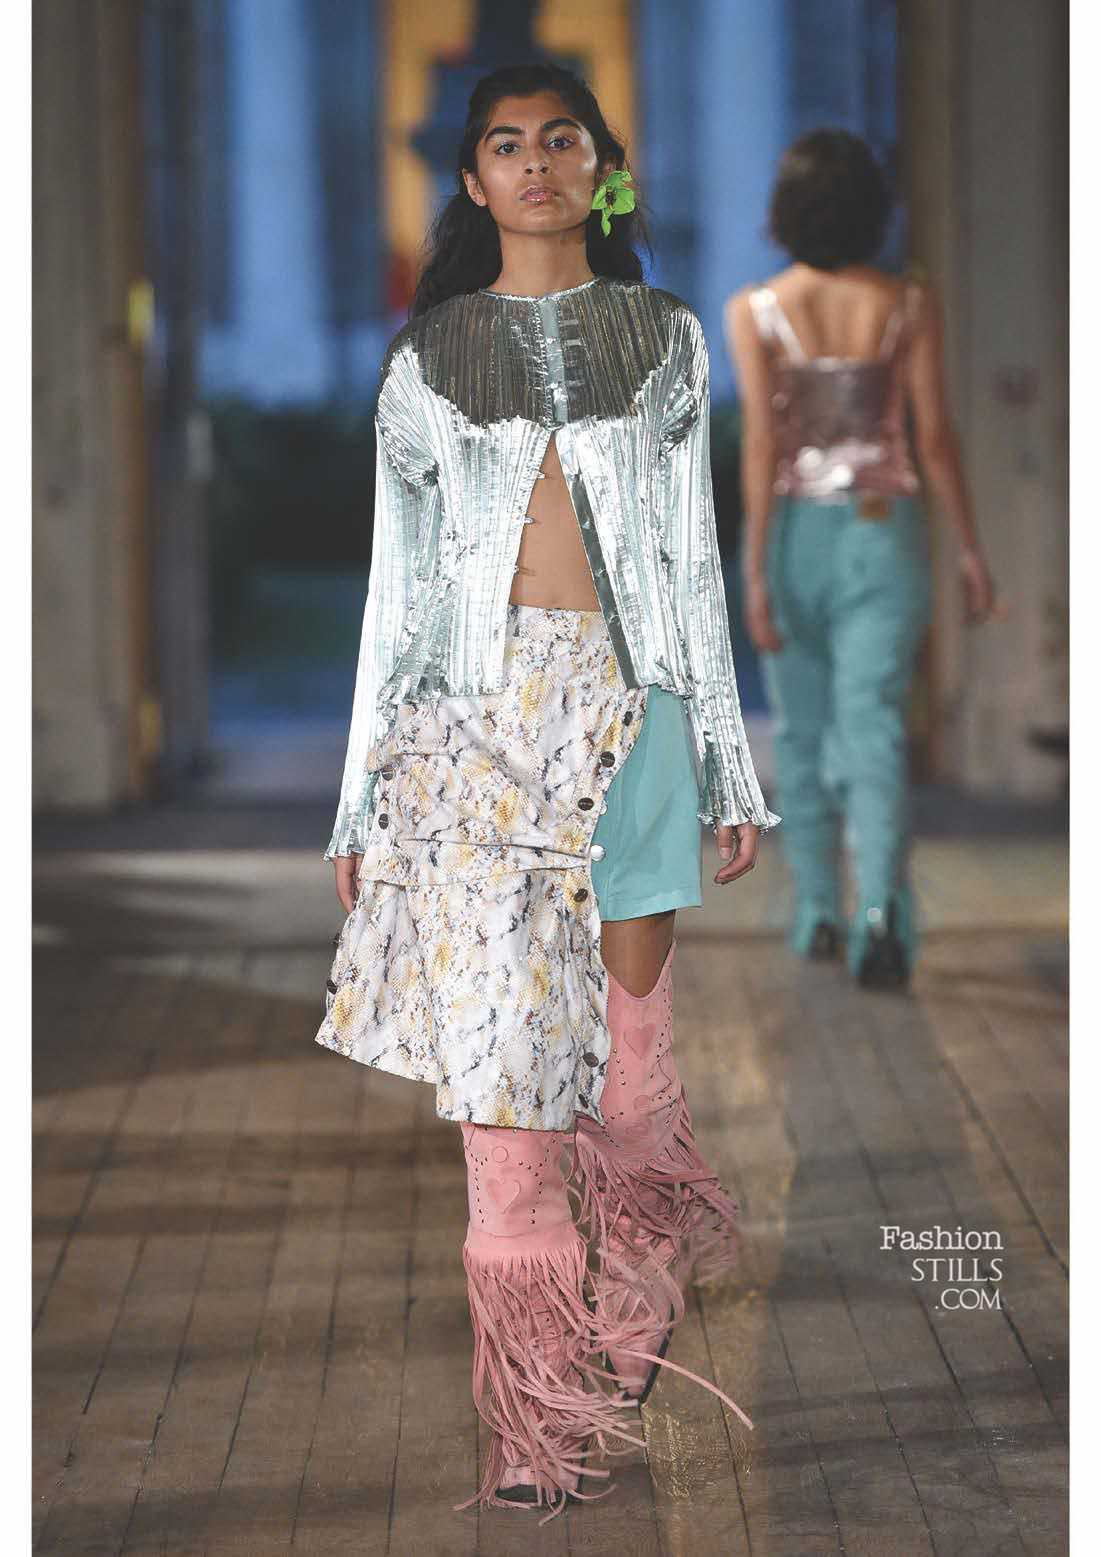 Neith Nyer_1513681565_14_look-book-_-press-release-ss18-neith-nyer-020.jpg